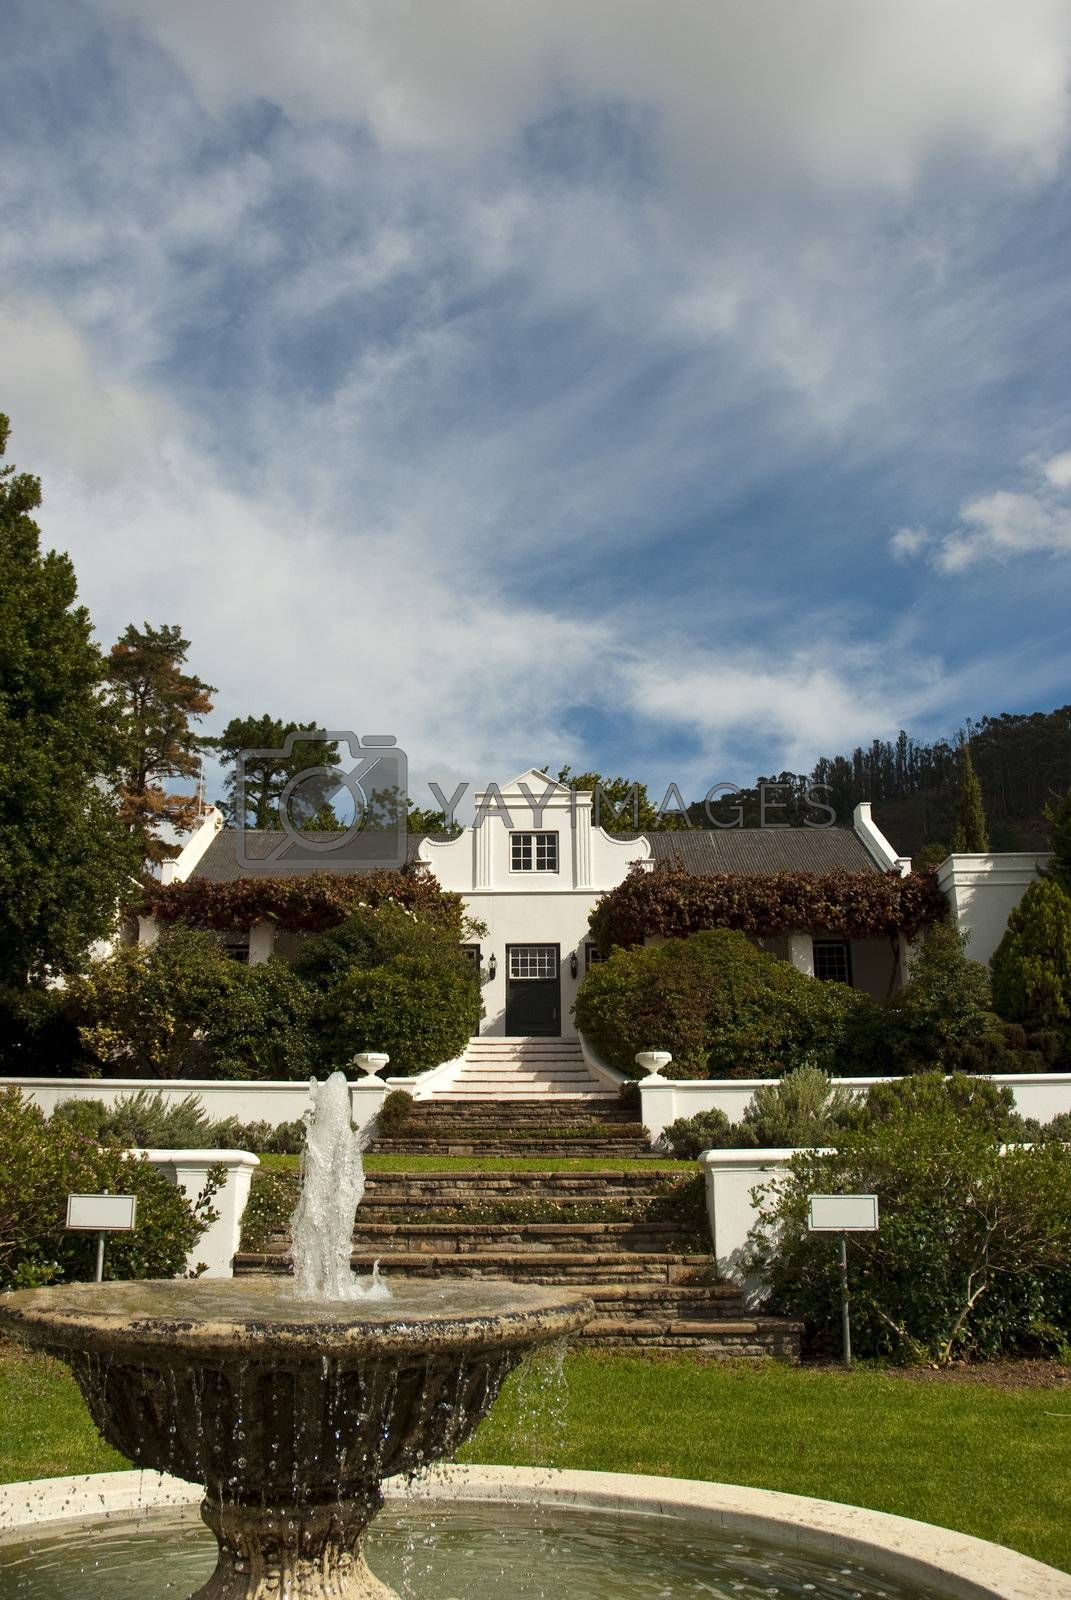 Classic Cape Dutch farm house with garden in the foreground and cloudy blue skies overhead